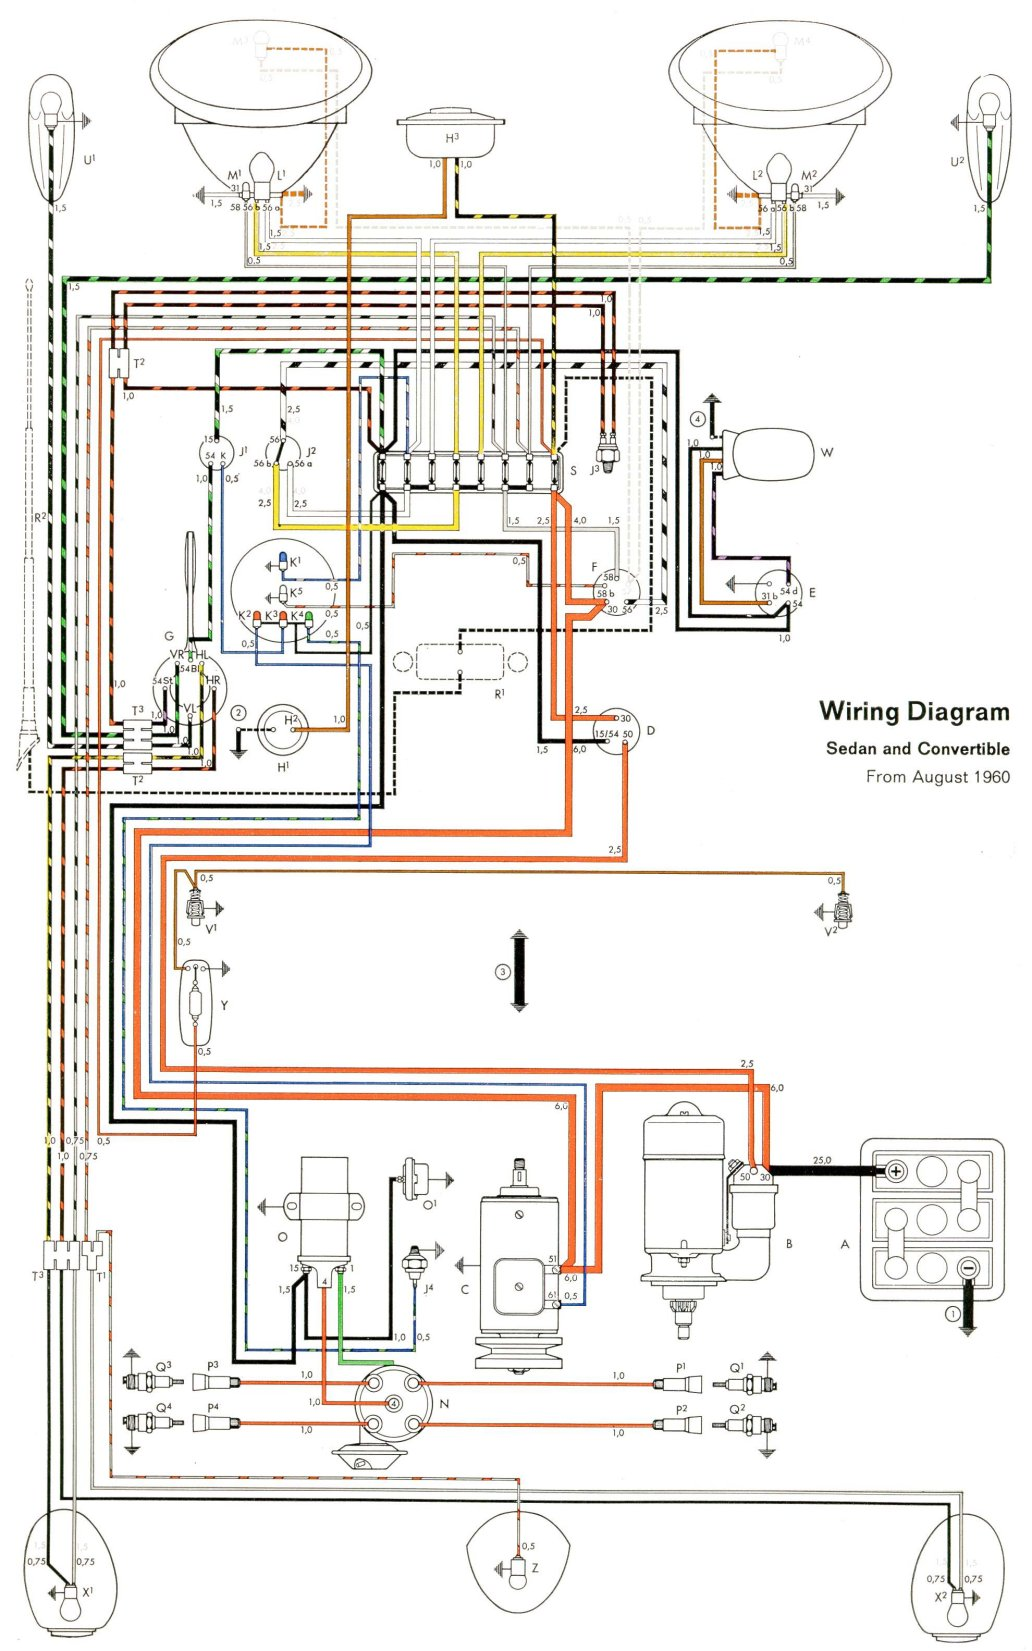 Volkswagen Beetle Wiring Diagram Reinvent Your 1971 Shovelhead Thesamba Com Type 1 Diagrams Rh Vw 1970